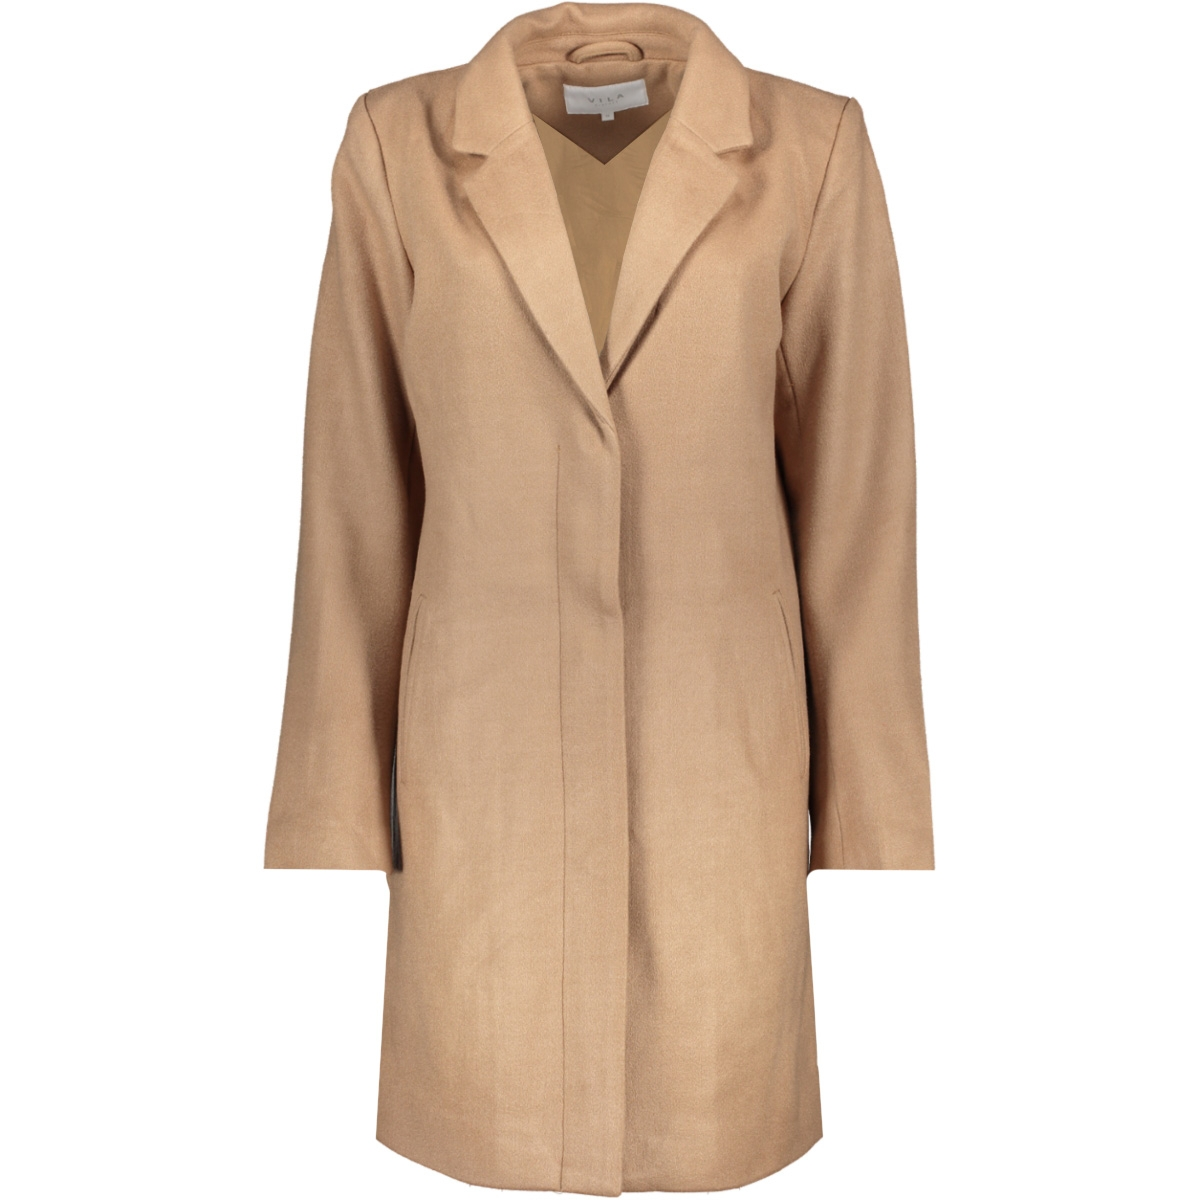 vicamdon coat/1 14049518 vila jas dusty camel